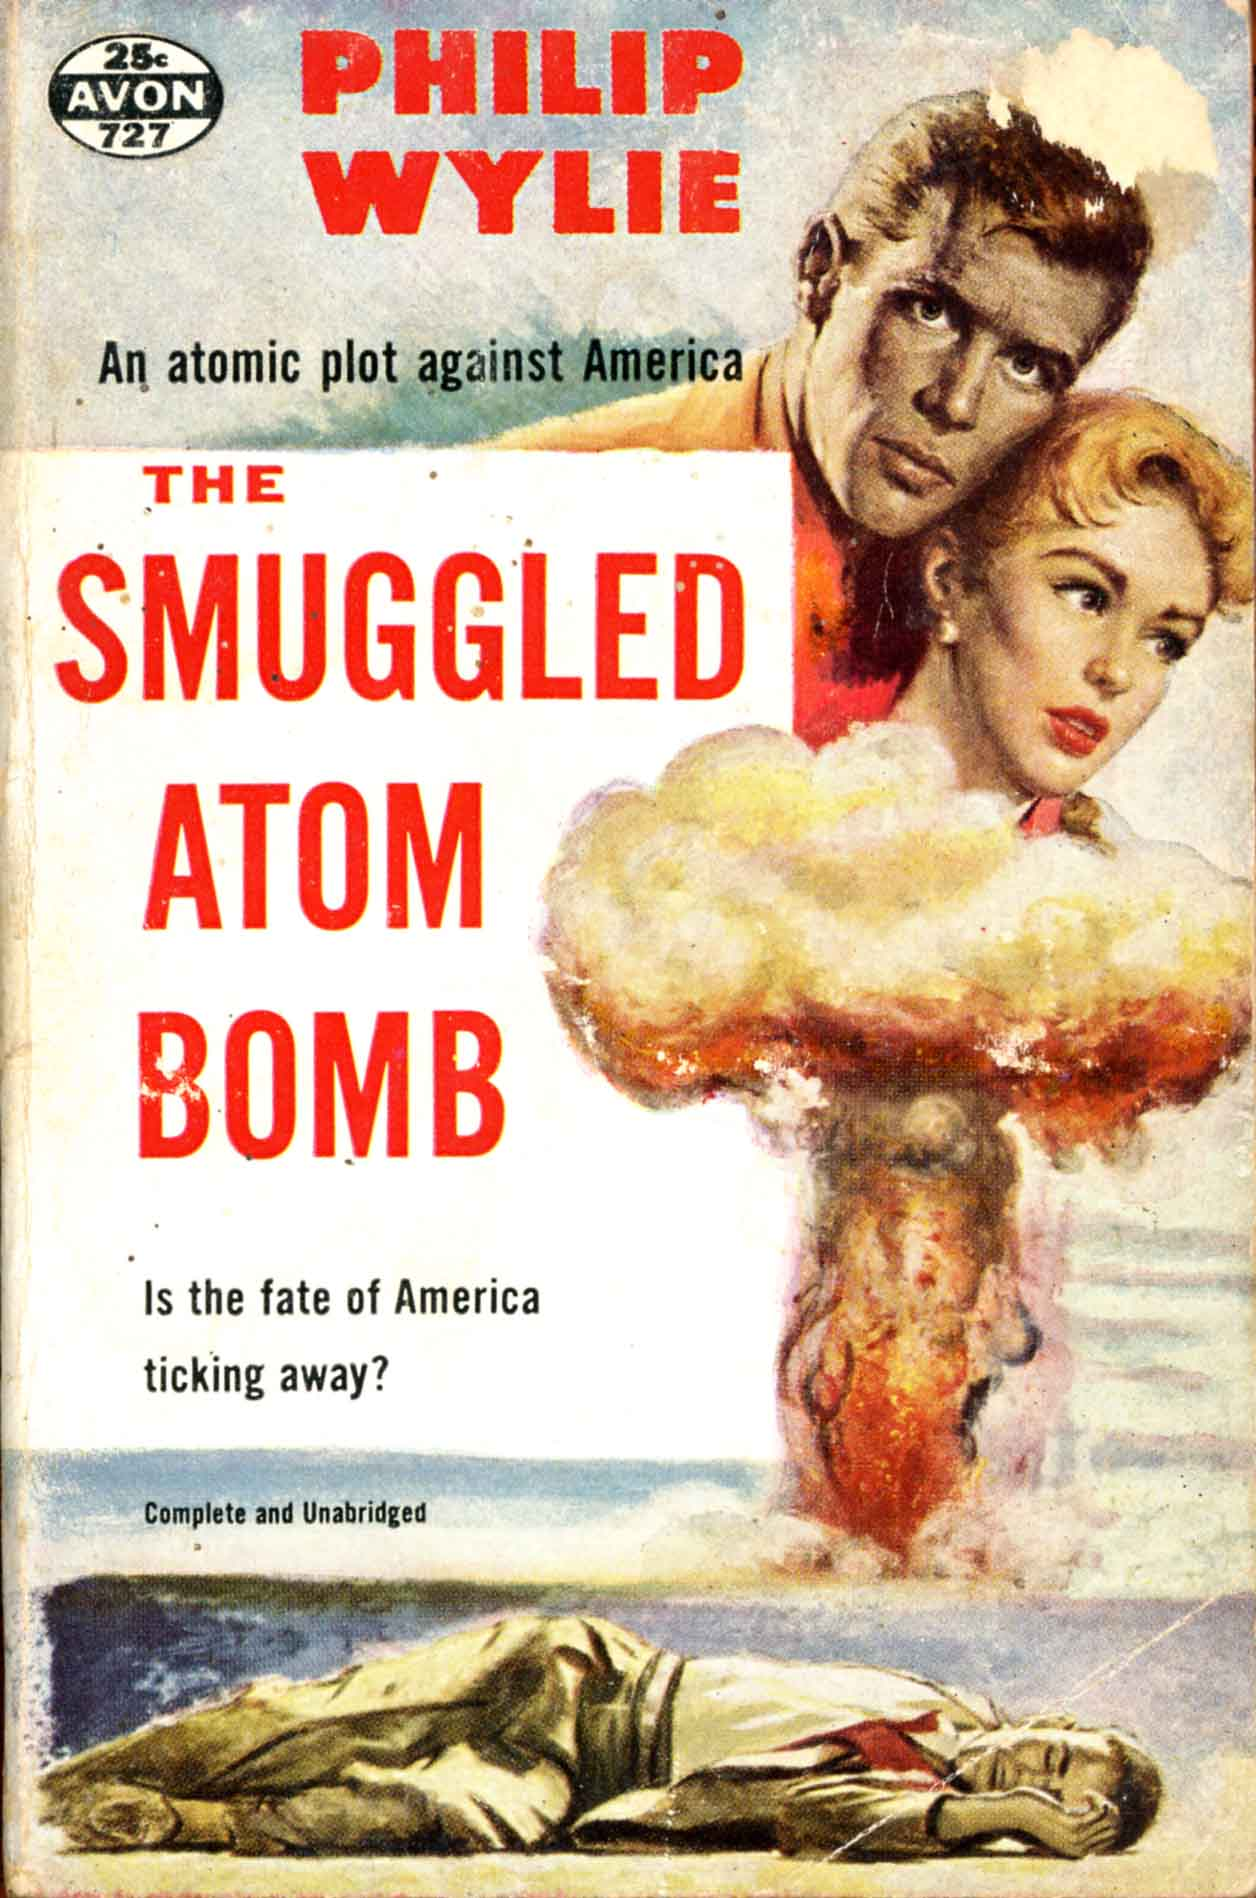 Wylie, Smuggled Atom Bomb, 1951 edn